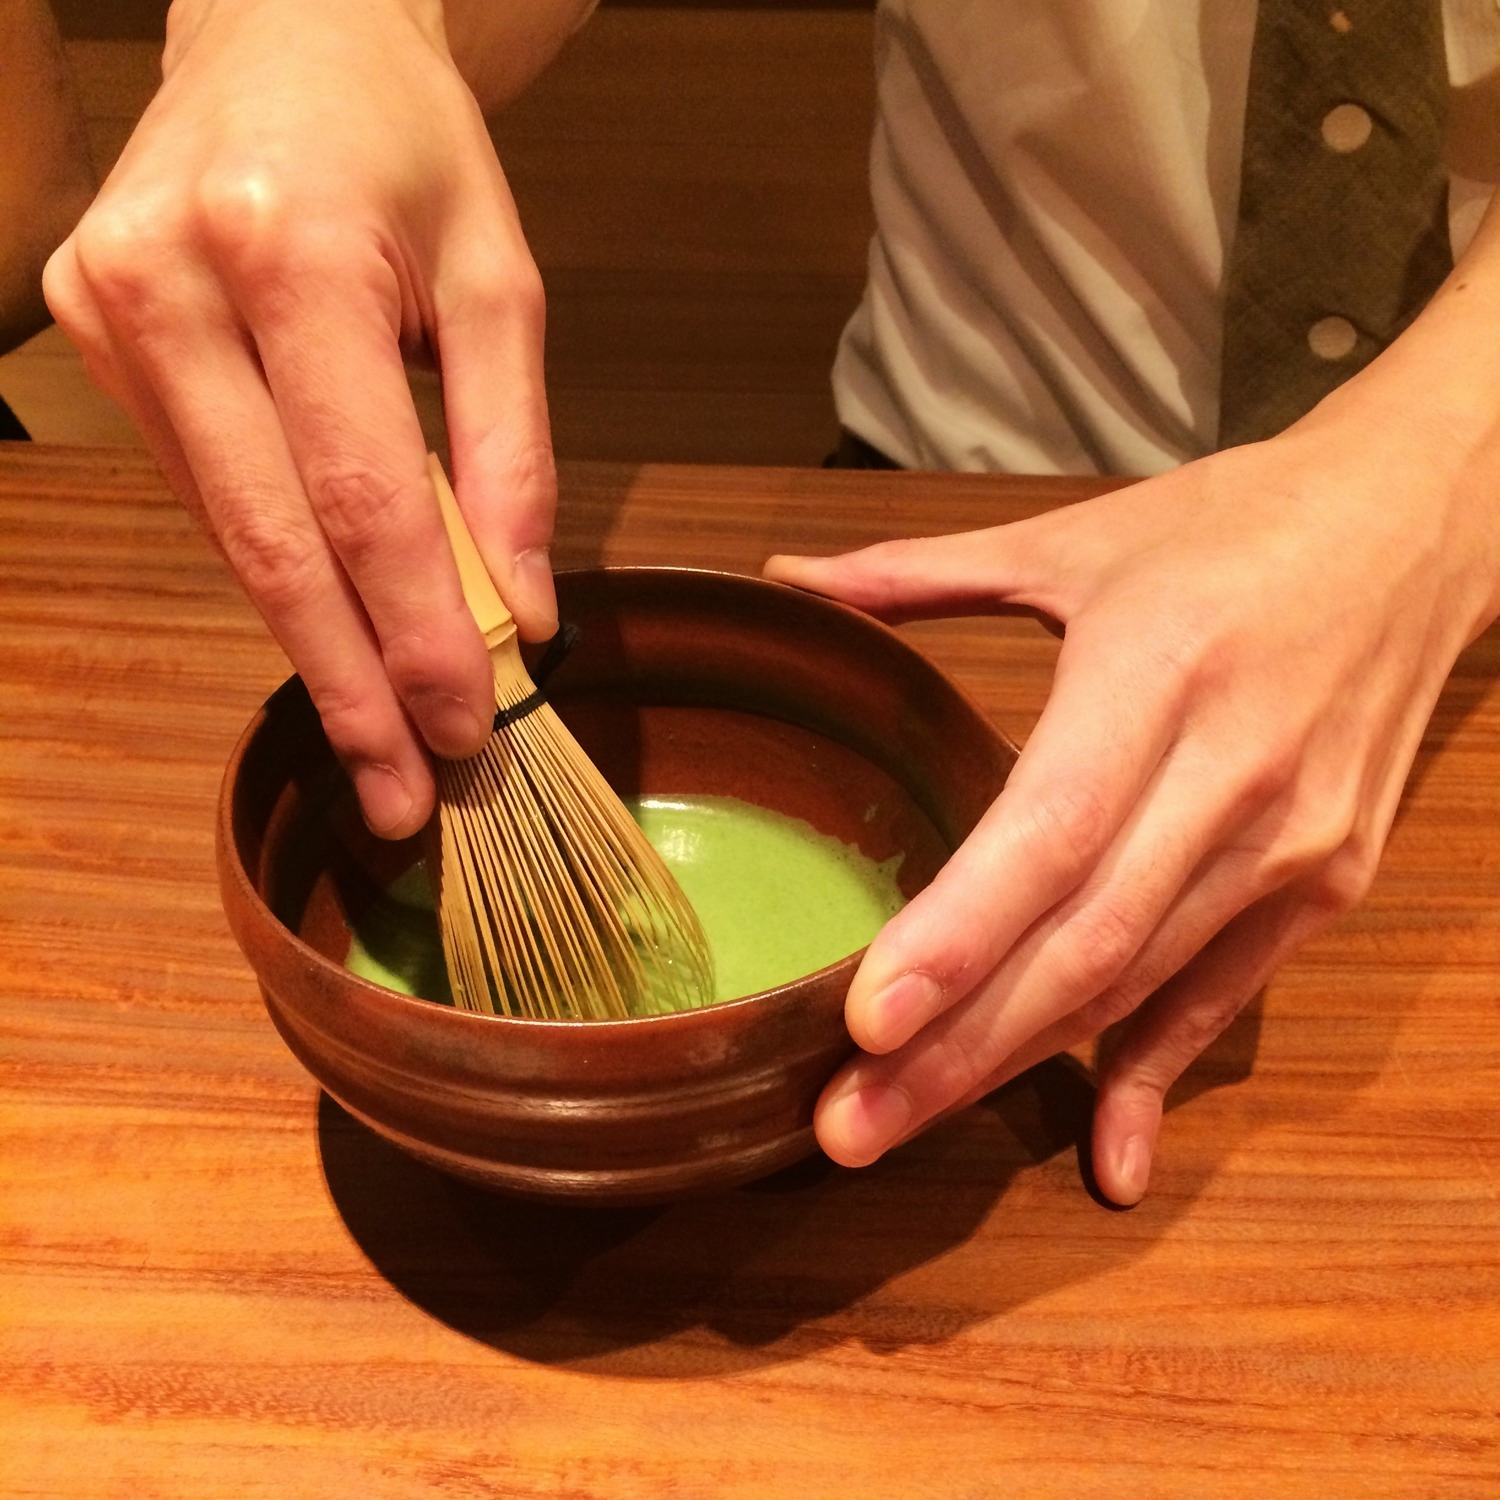 Making matcha tea using a special bamboo whisk known as a chasen.